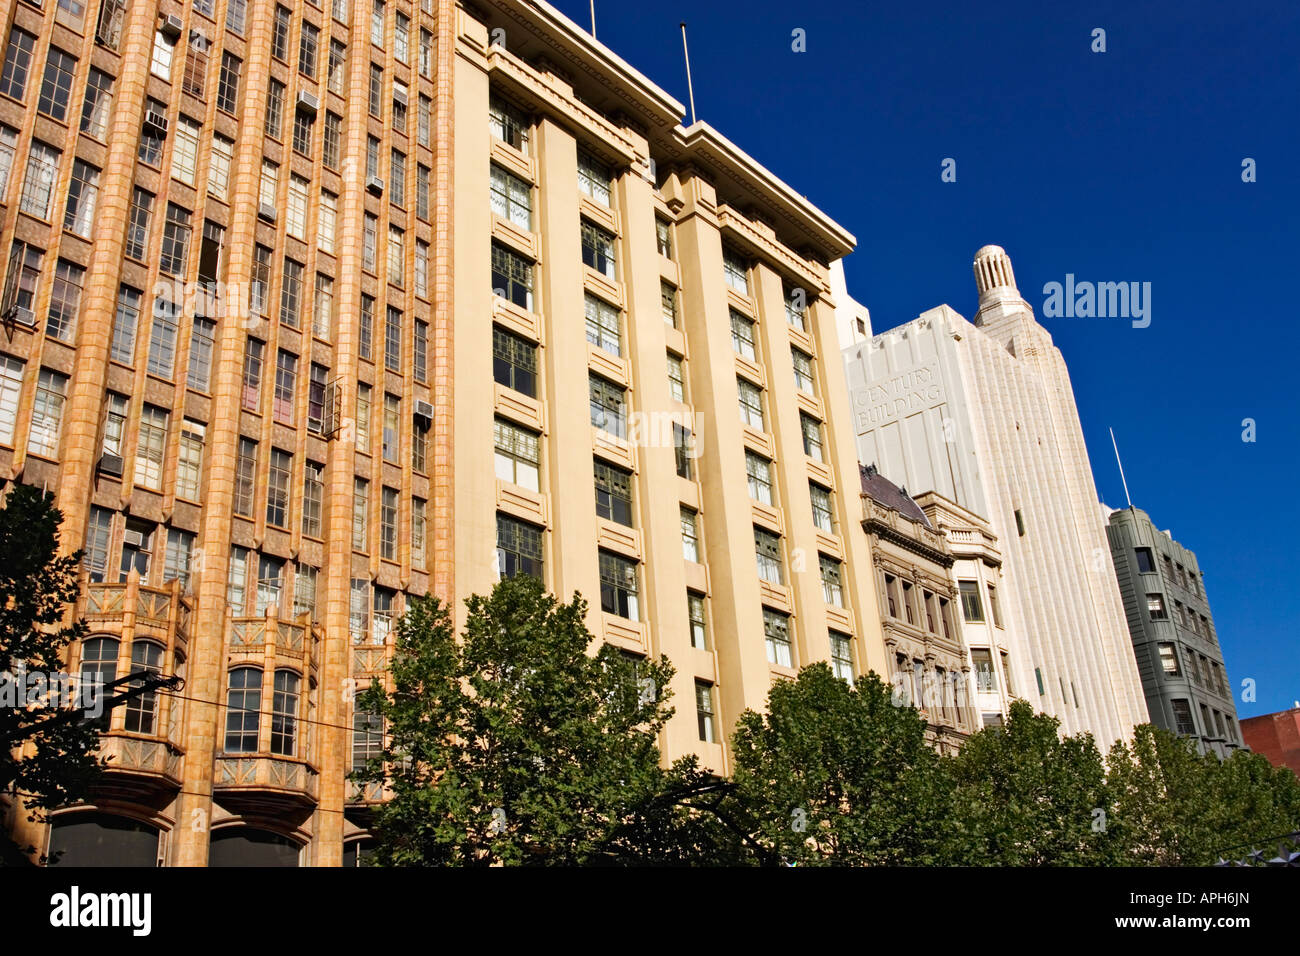 melbourne scenic / the facades of art deco style buildings in